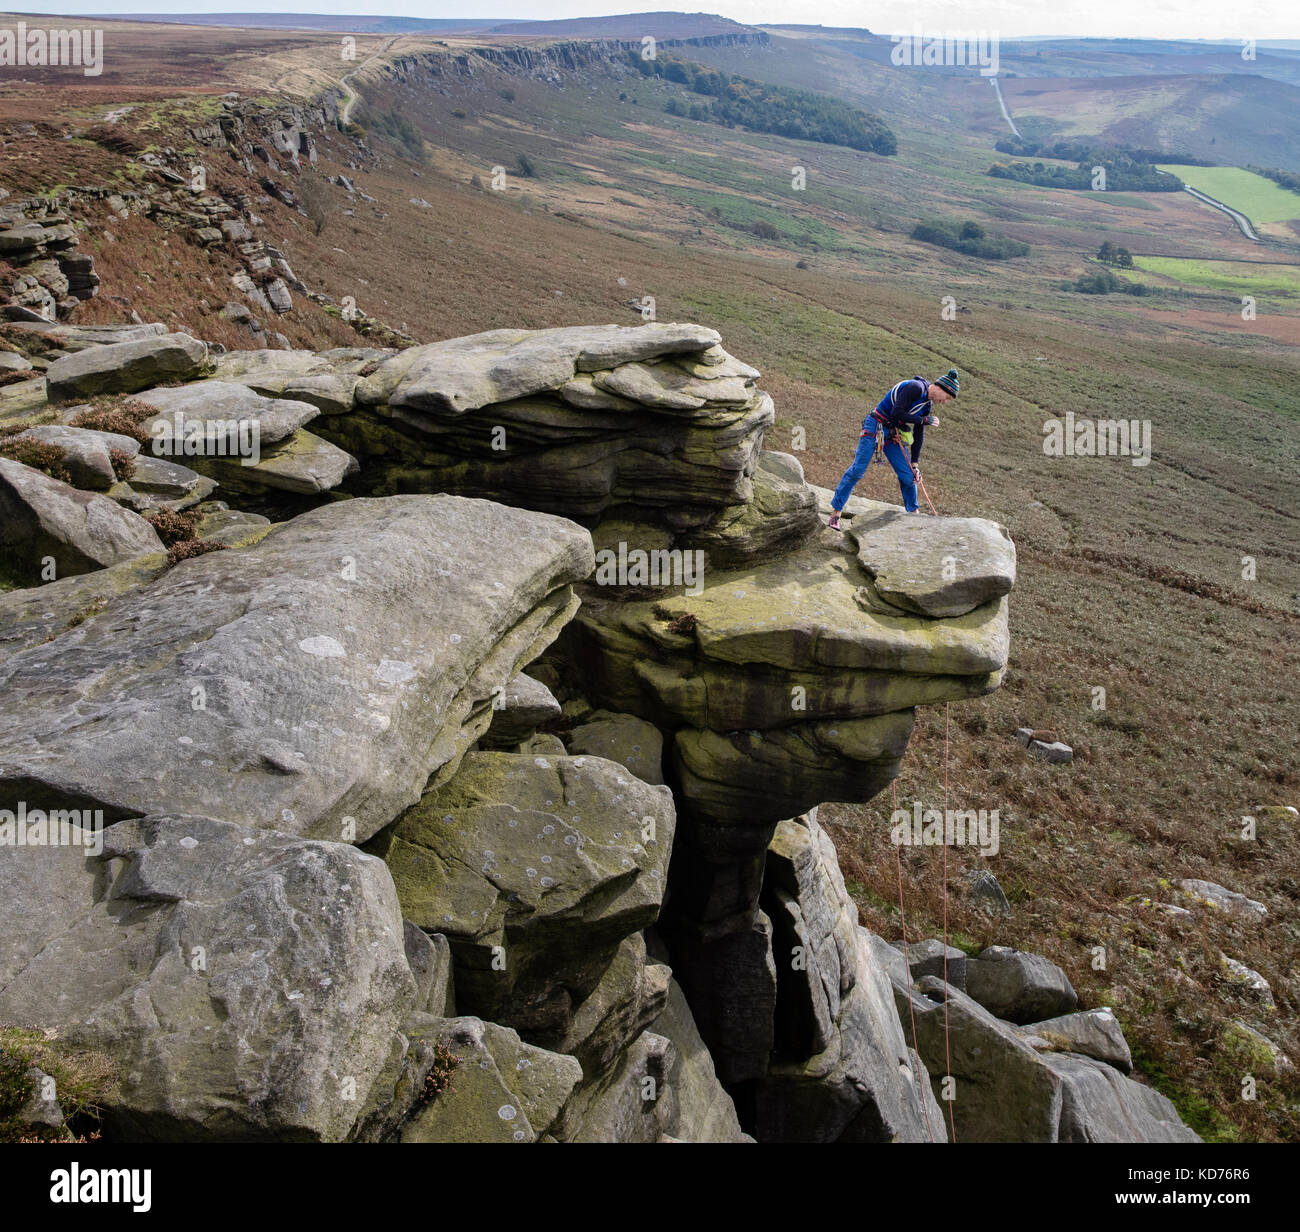 A climber calls down to his climbing buddy from an overhang on Stanage Edge near Hathersage in the Derbyshire Peak - Stock Image